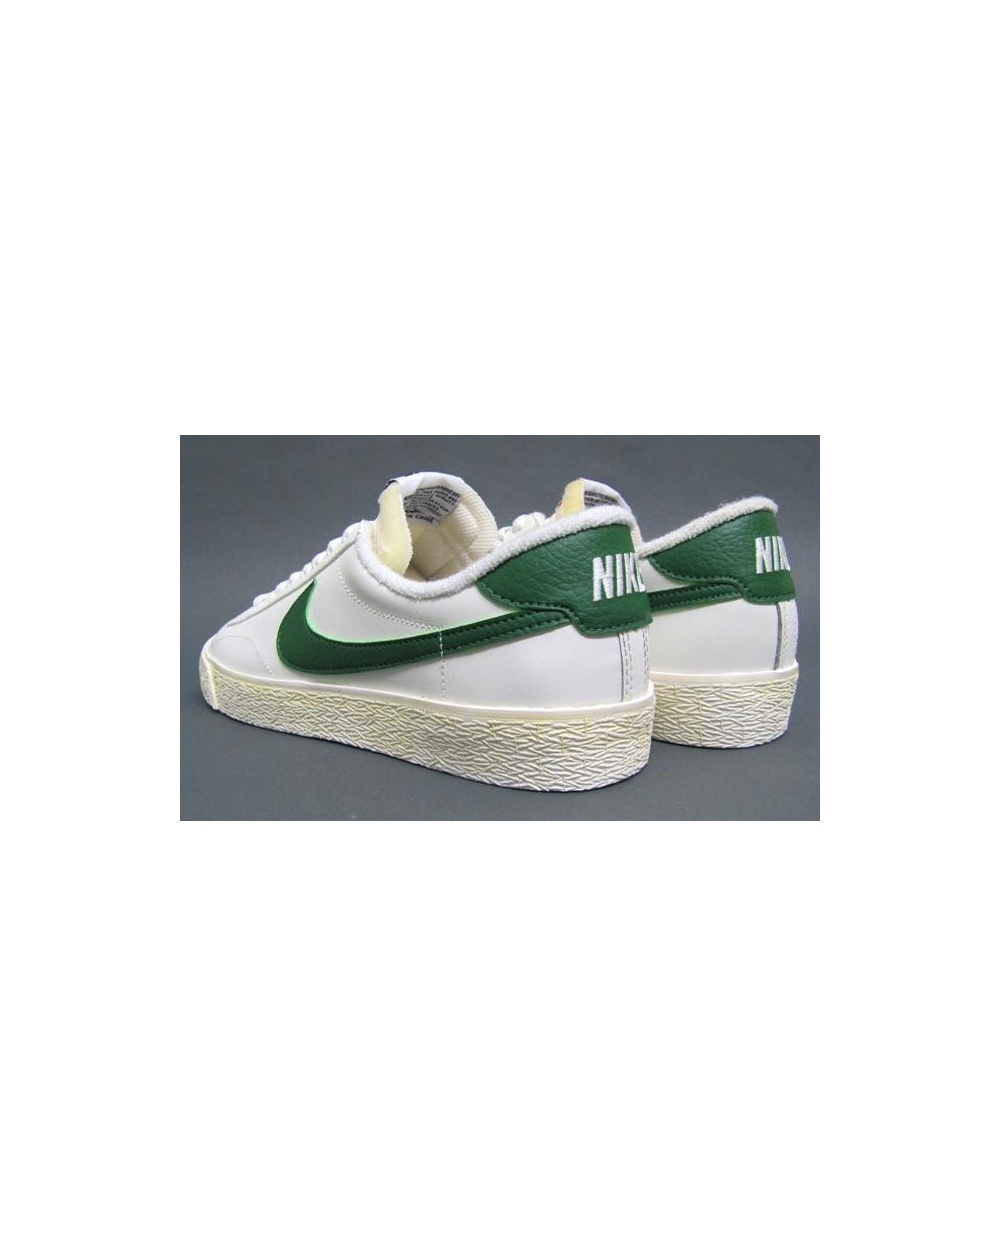 ... Green The Sole Supplier Nike Tennis Classic Ac Trainers Whitegreen ... 8bcb389b4